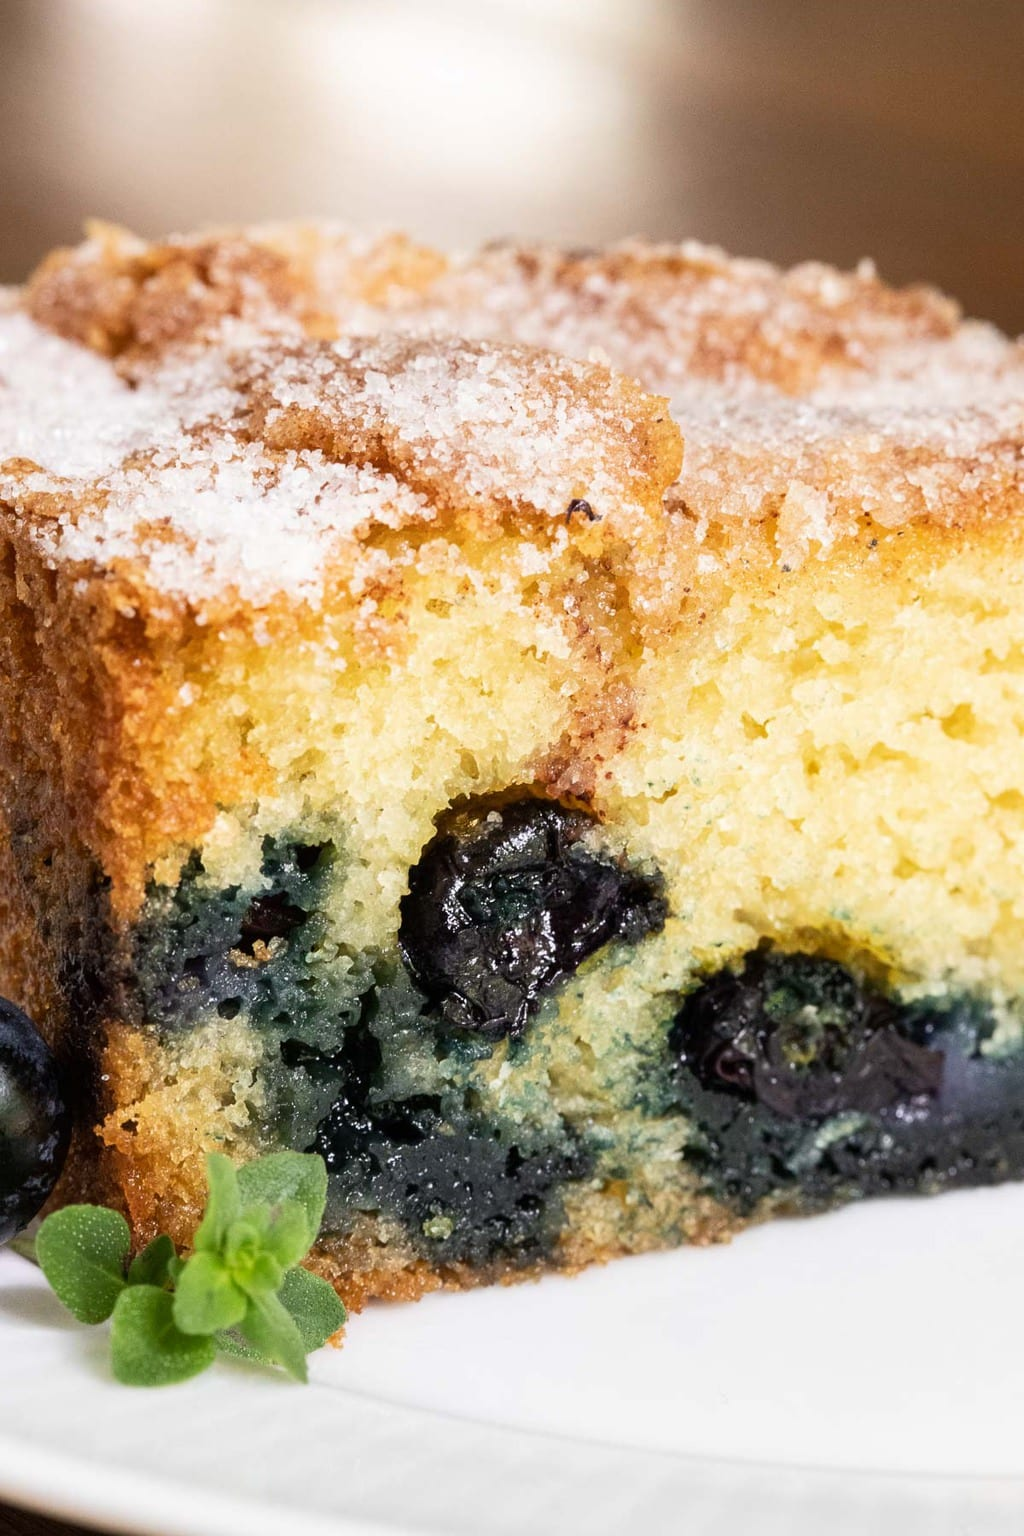 Closeup vertical photo of the inside of a Blueberry Buttermilk Breakfast Cake.